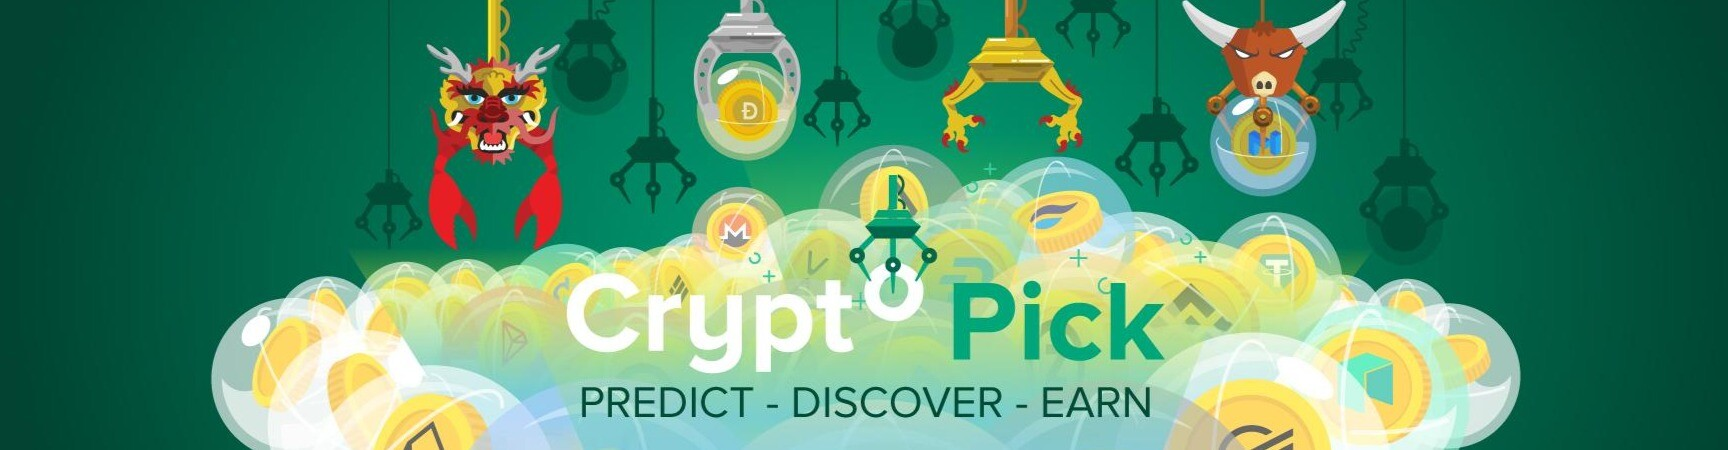 CryptoPick - Predict, Discover and Earn